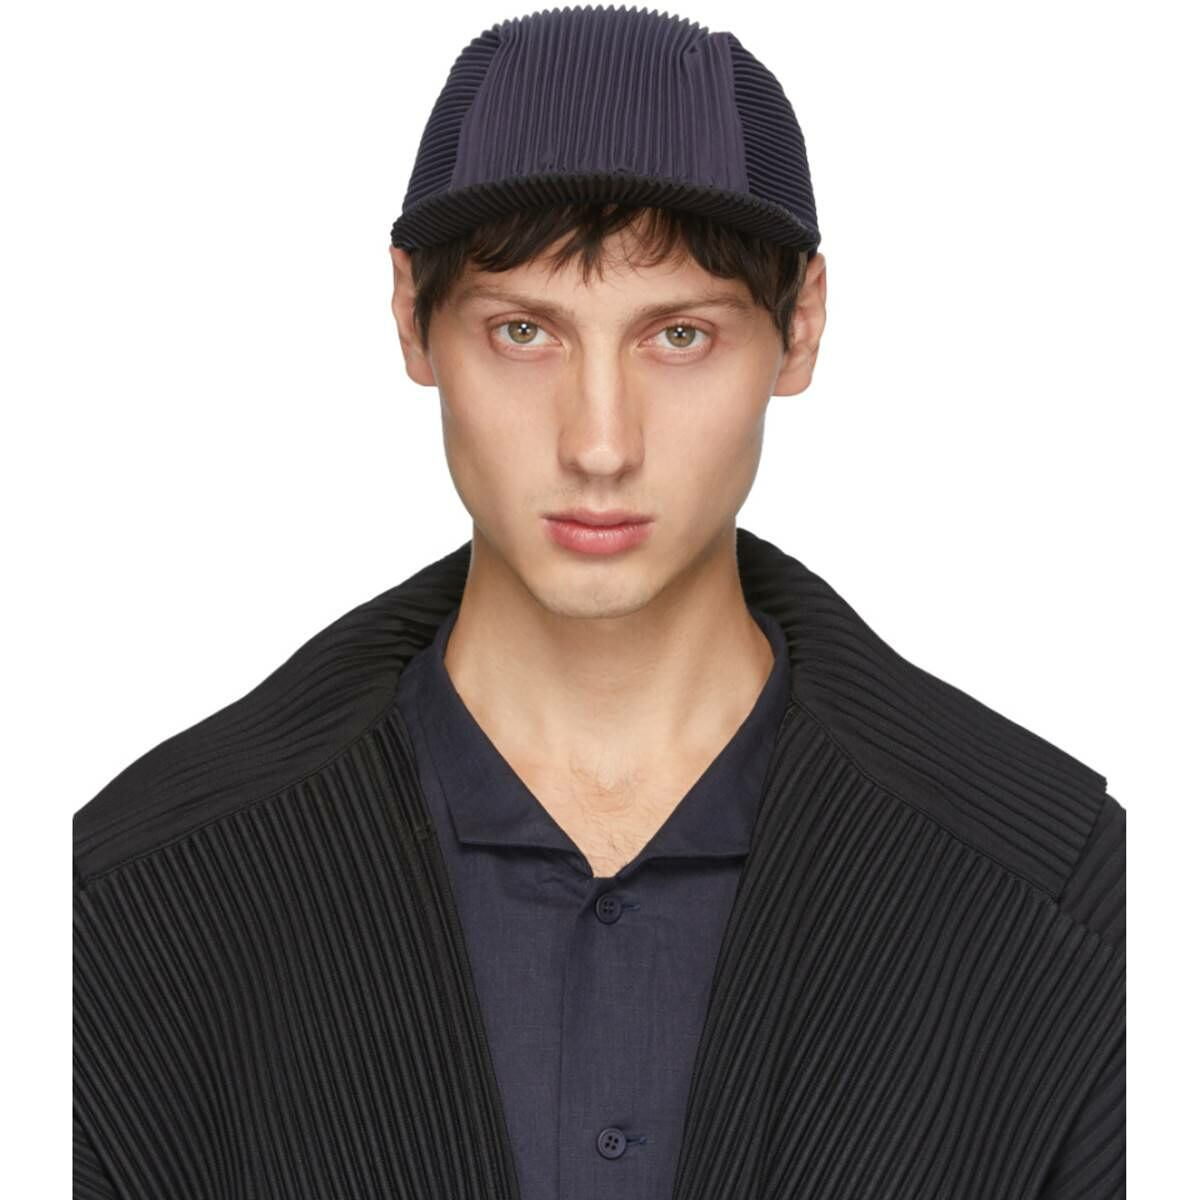 Homme Plisse Issey Miyake Navy and Black Pleated Cap Ssense USA MEN Men ACCESSORIES Mens CAPS